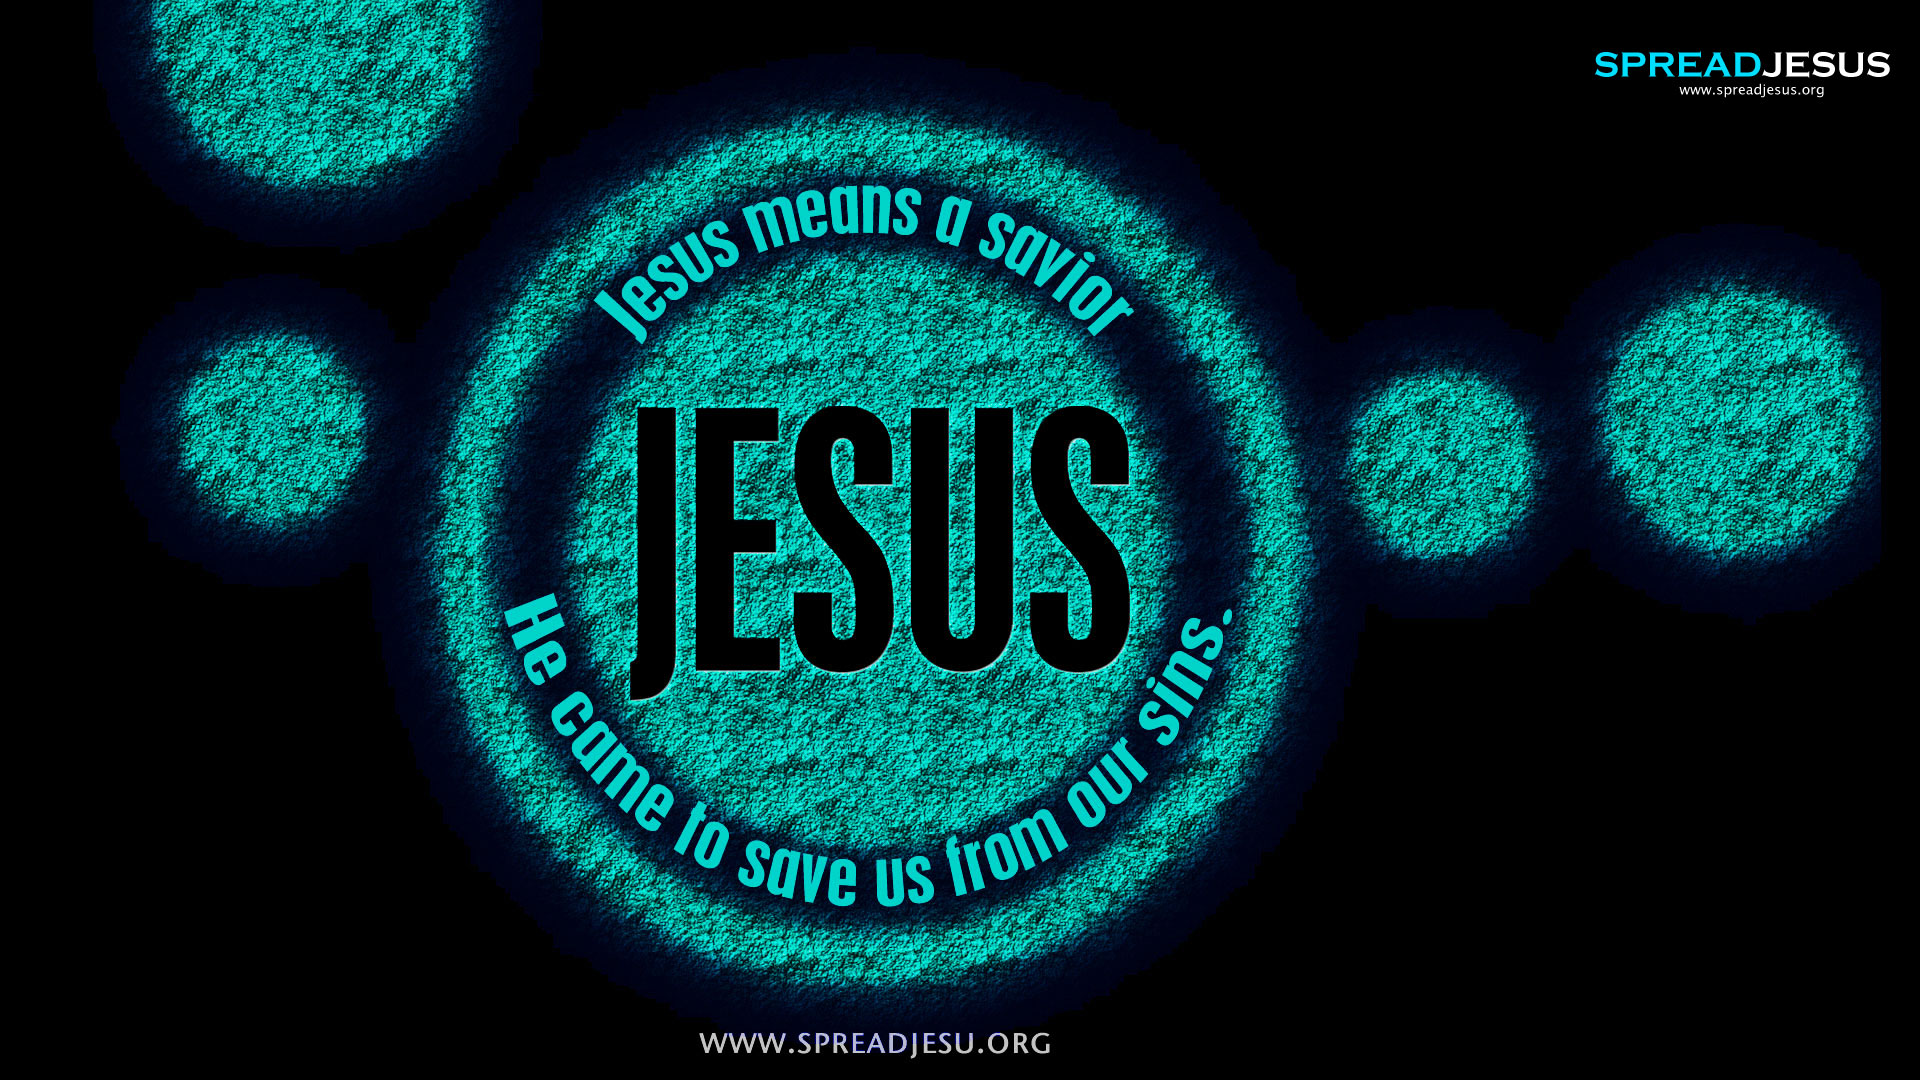 Jesus Means A Savior HD wallpapers free downloading Jesus Means A Savior He came to Save us from our Sins HD wallpaper 3 VIEW AND DOWNLOAD